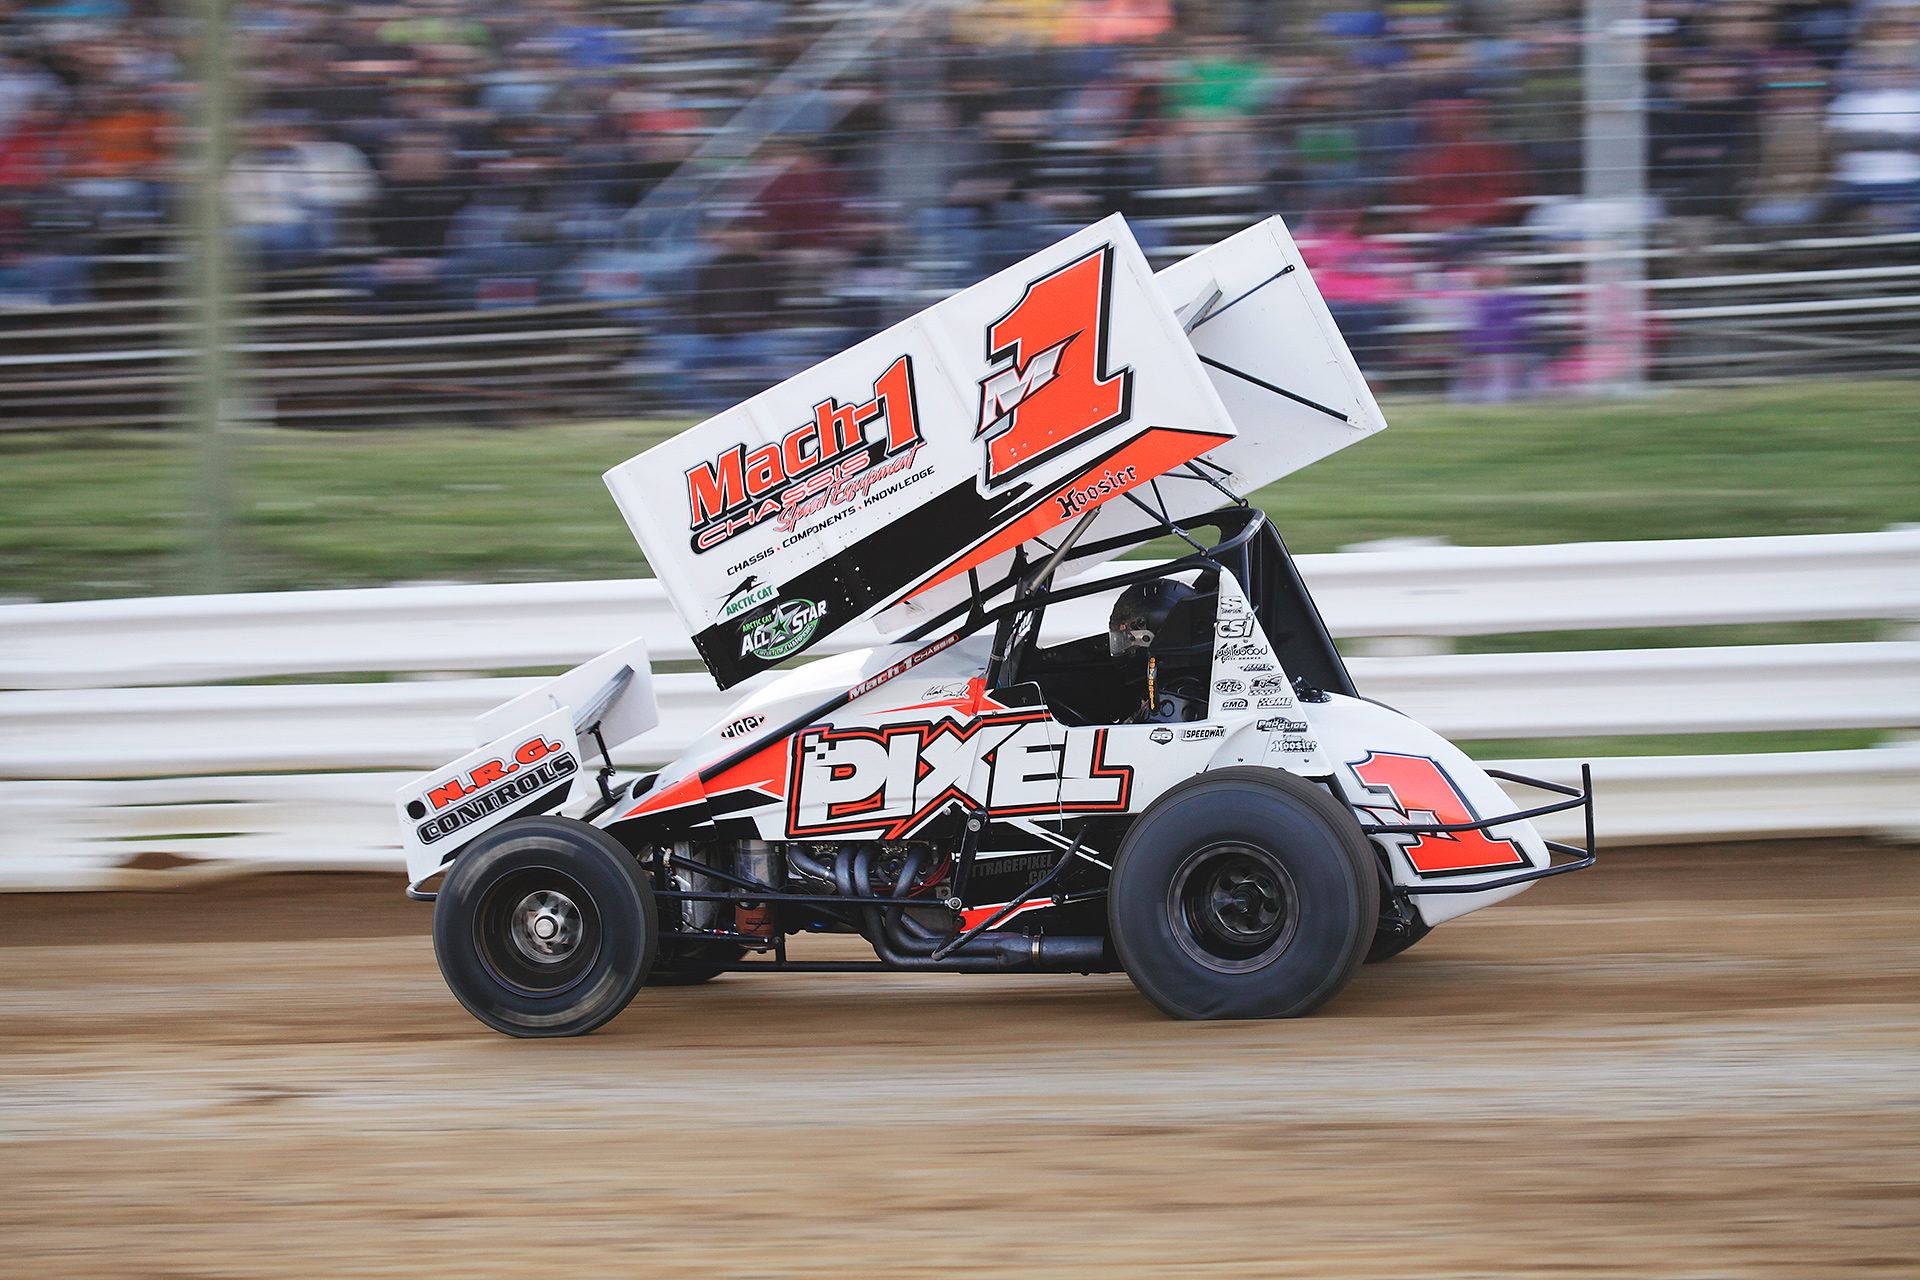 M1 driver; Mark Smith charges hard into turn 1 at Selinsgrove Speedway in 2016. He would later finish 3rd in the Feature that evening. ( Jeffrey Turford / TDP )